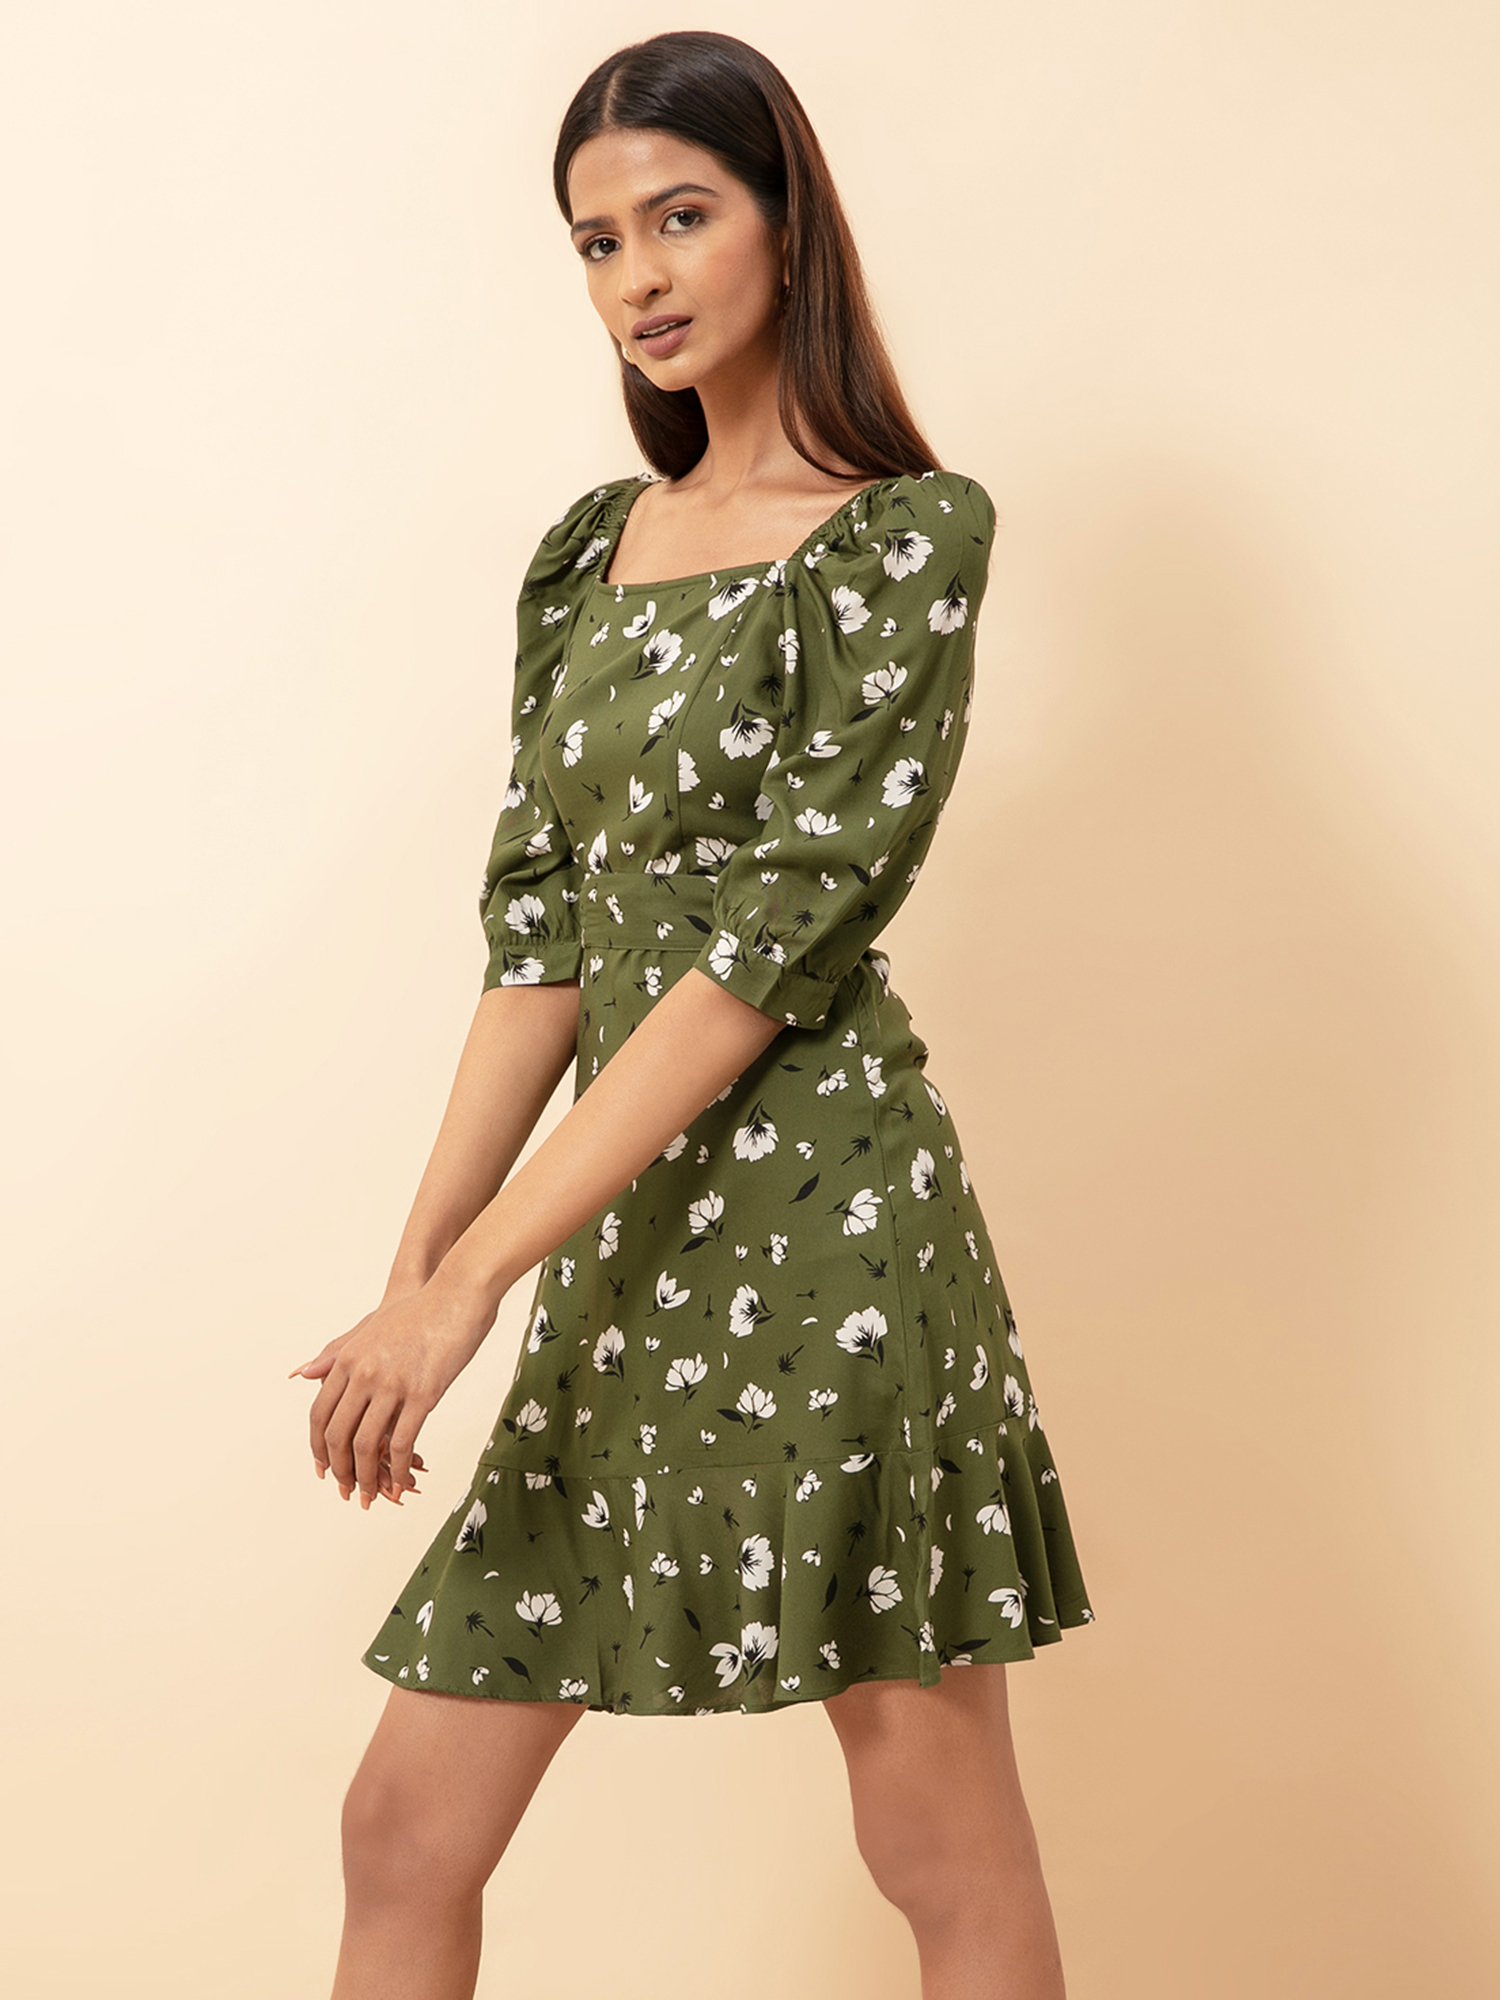 Dresses-Lets Bloom Away Dress3